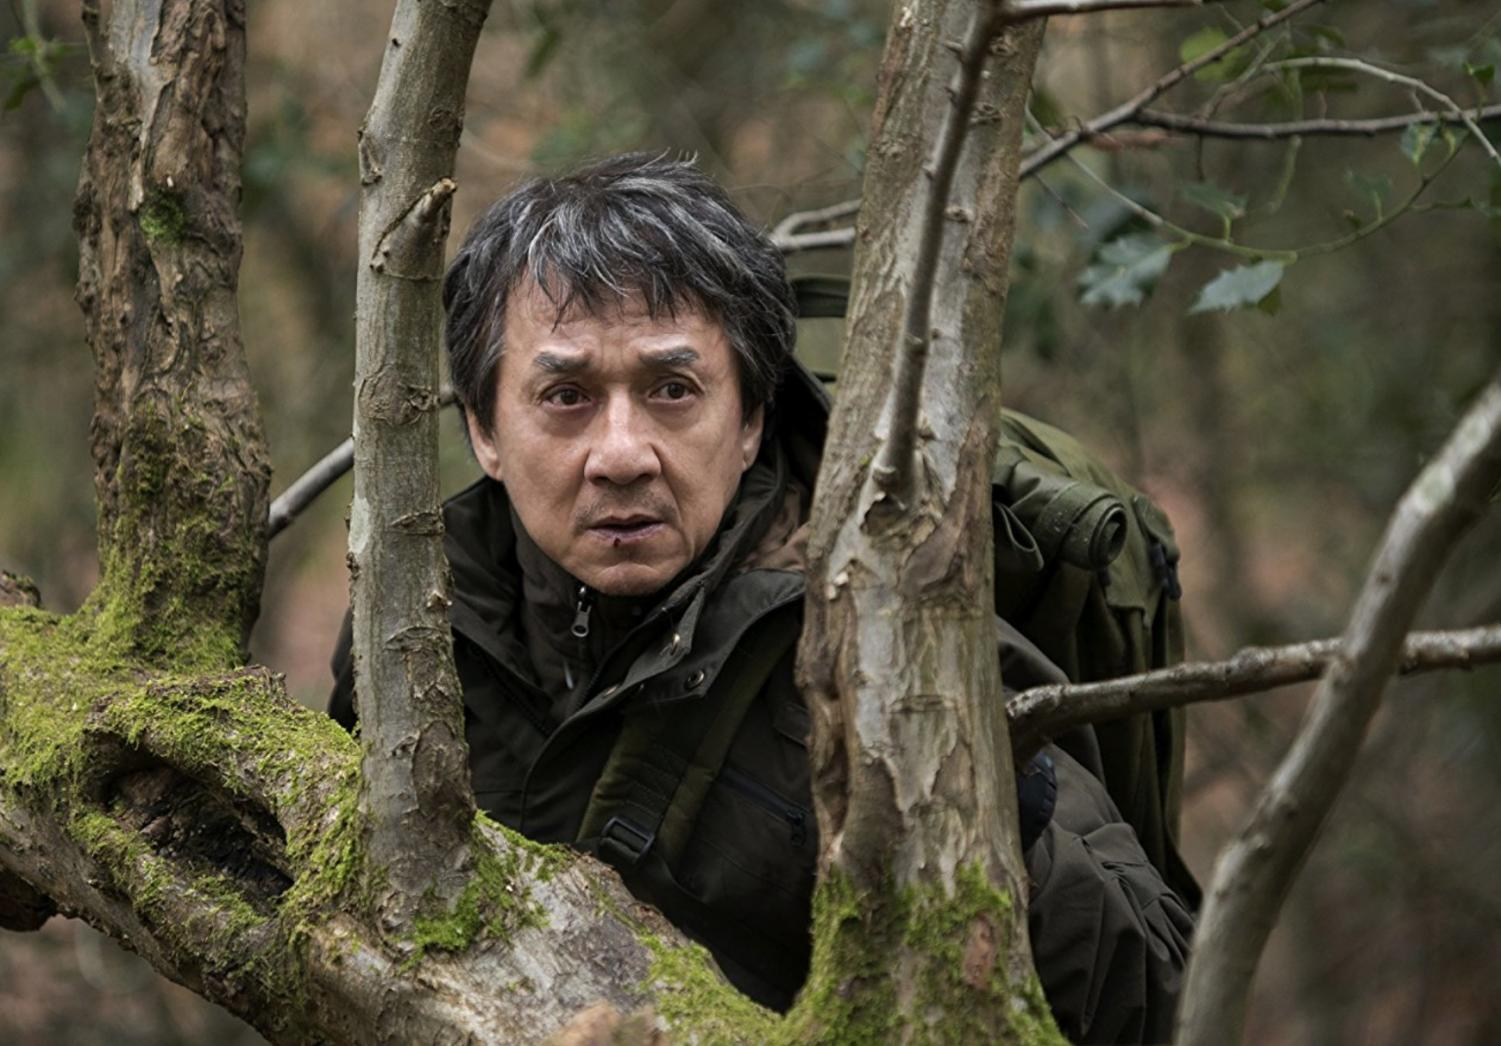 Photo courtesy of imdb.com. Quan (Chan) hides in the woods from pursuing attackers of the IRA sent by Hennessy.